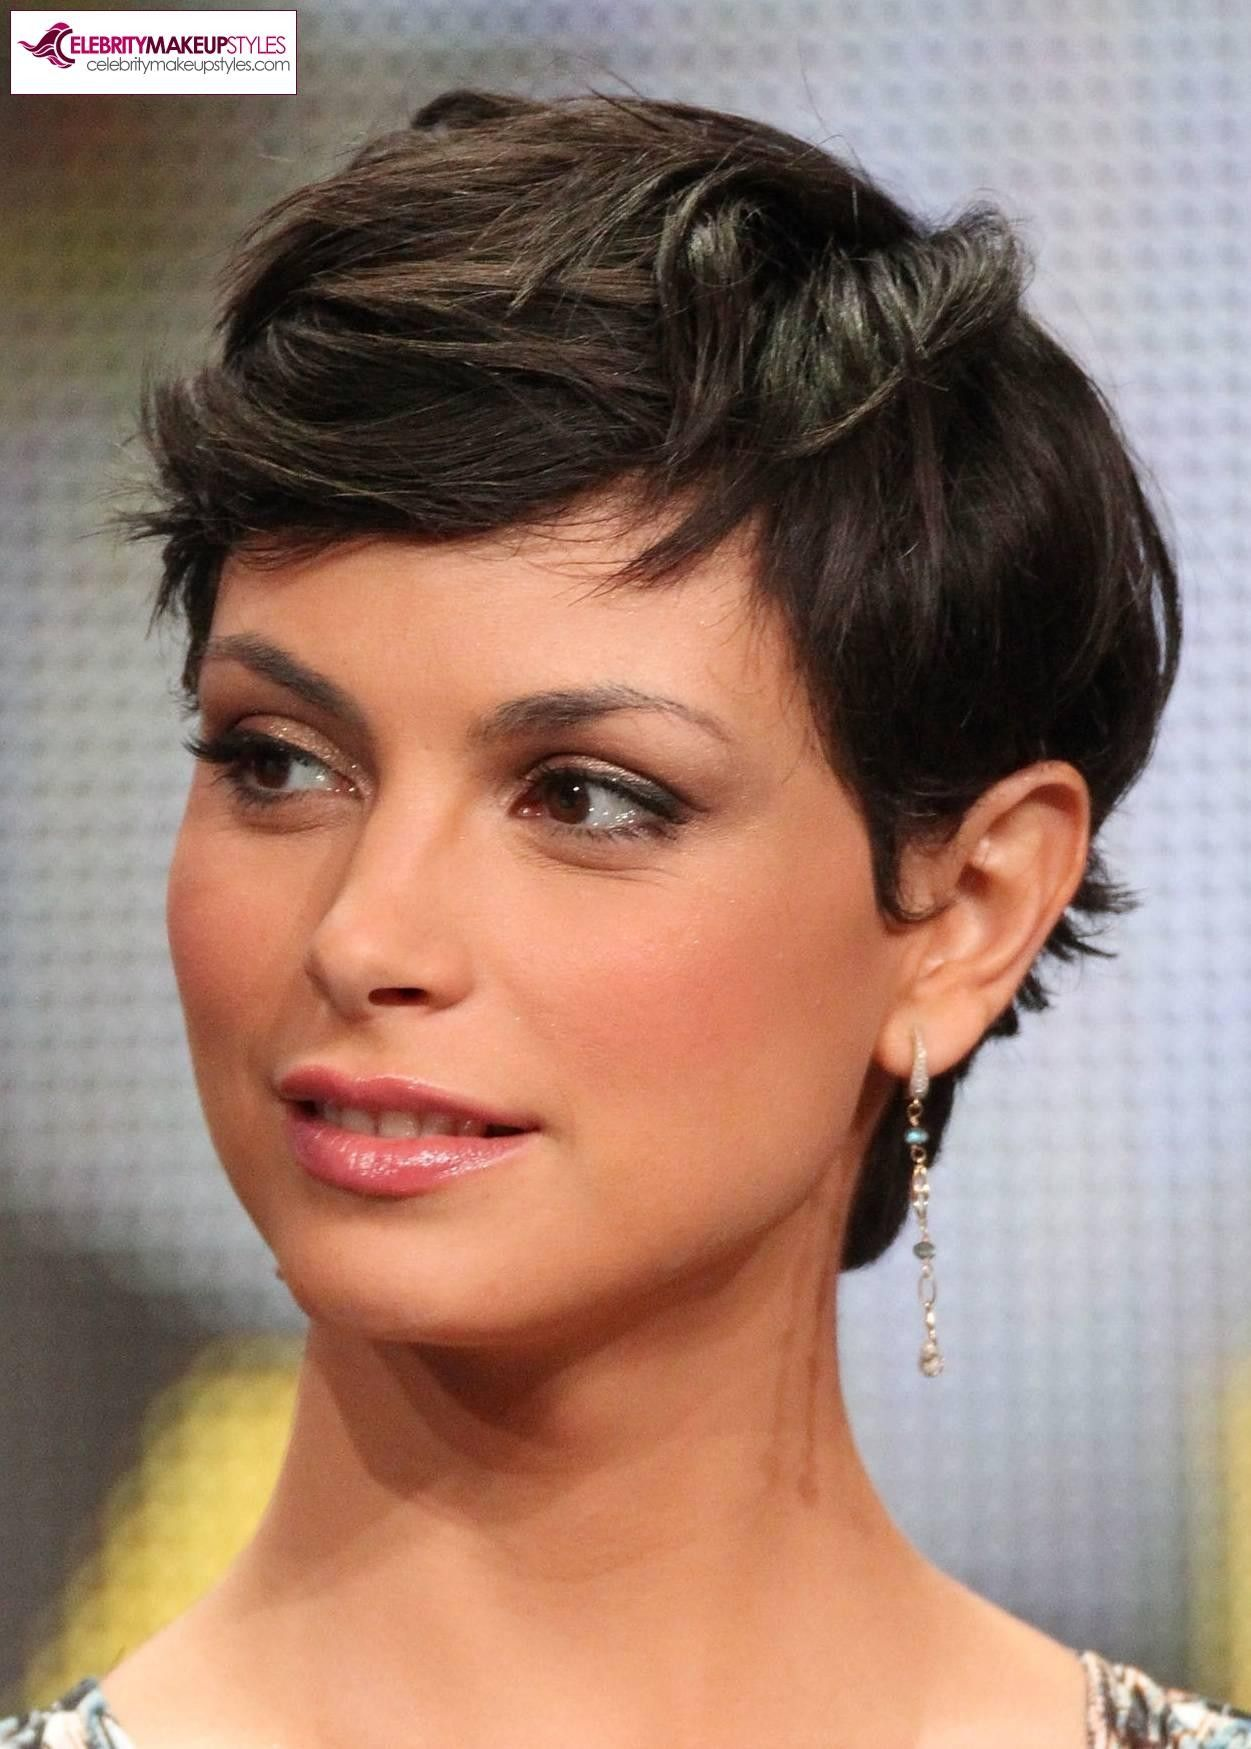 morena baccarin pixie hair - don't think i'll ever do a